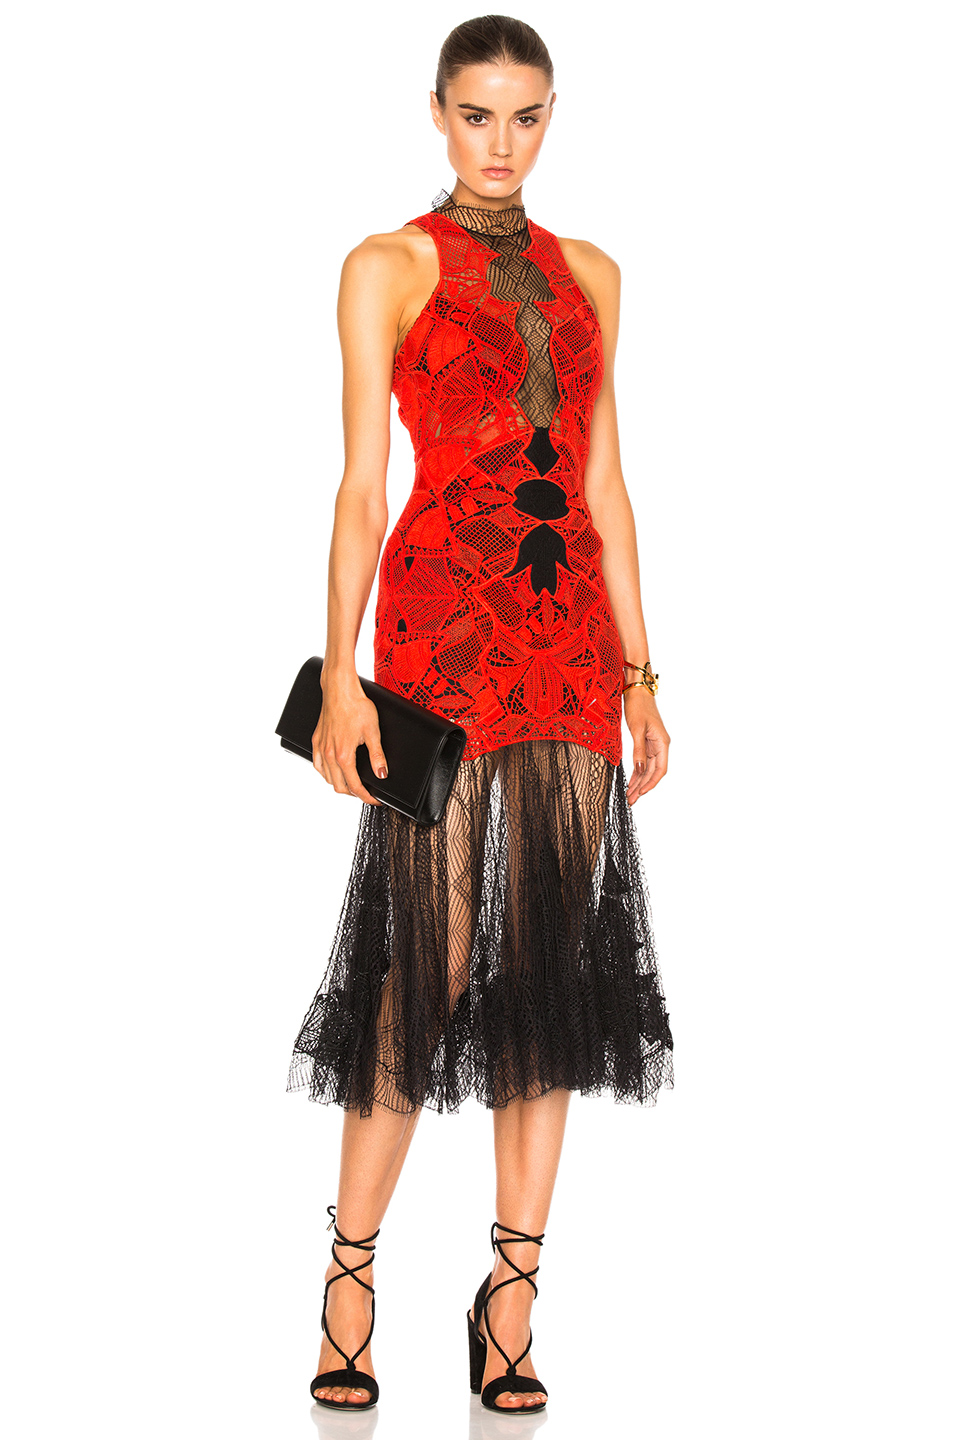 JONATHAN SIMKHAI Dome Lace Corded Dress in Black,Red